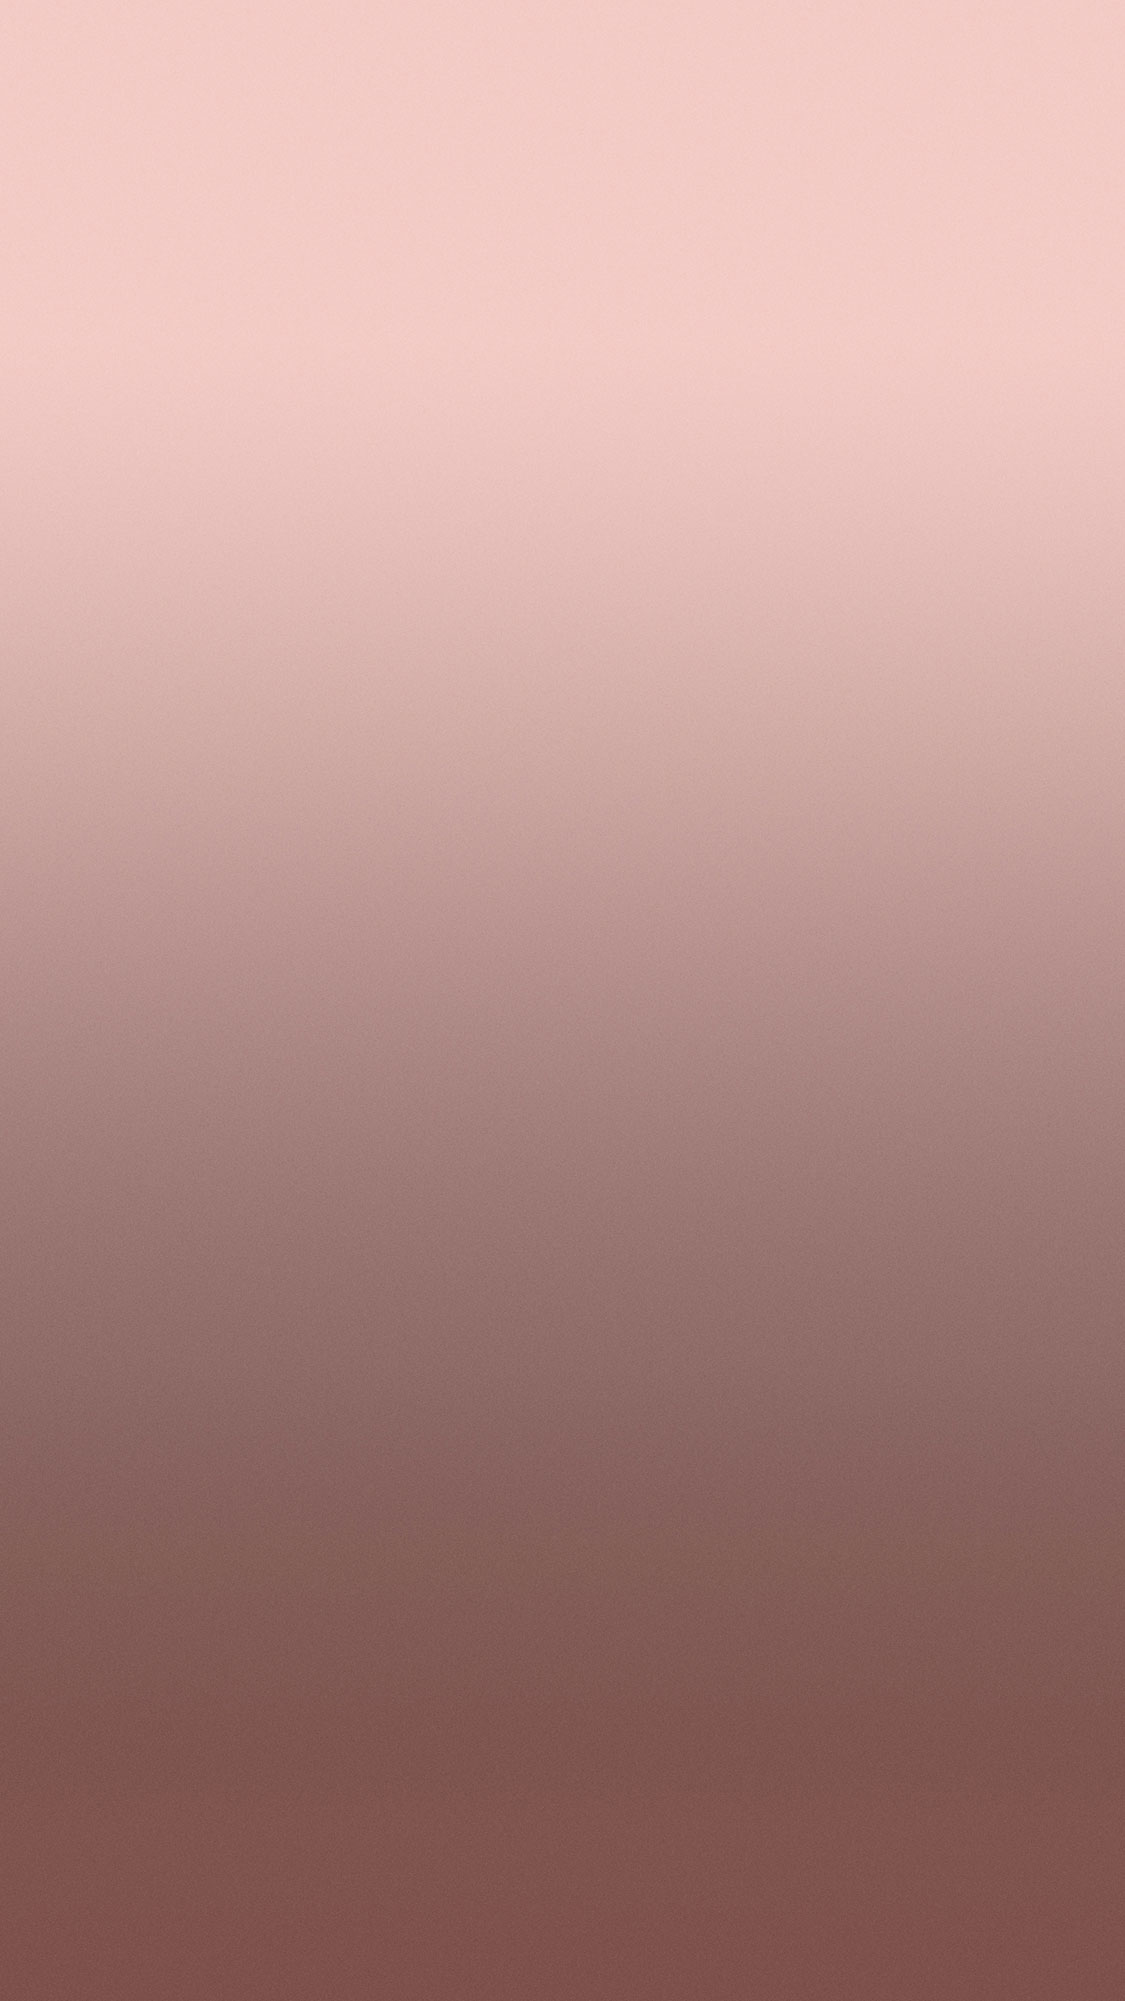 42 Rose Gold Wallpaper On Wallpapersafari